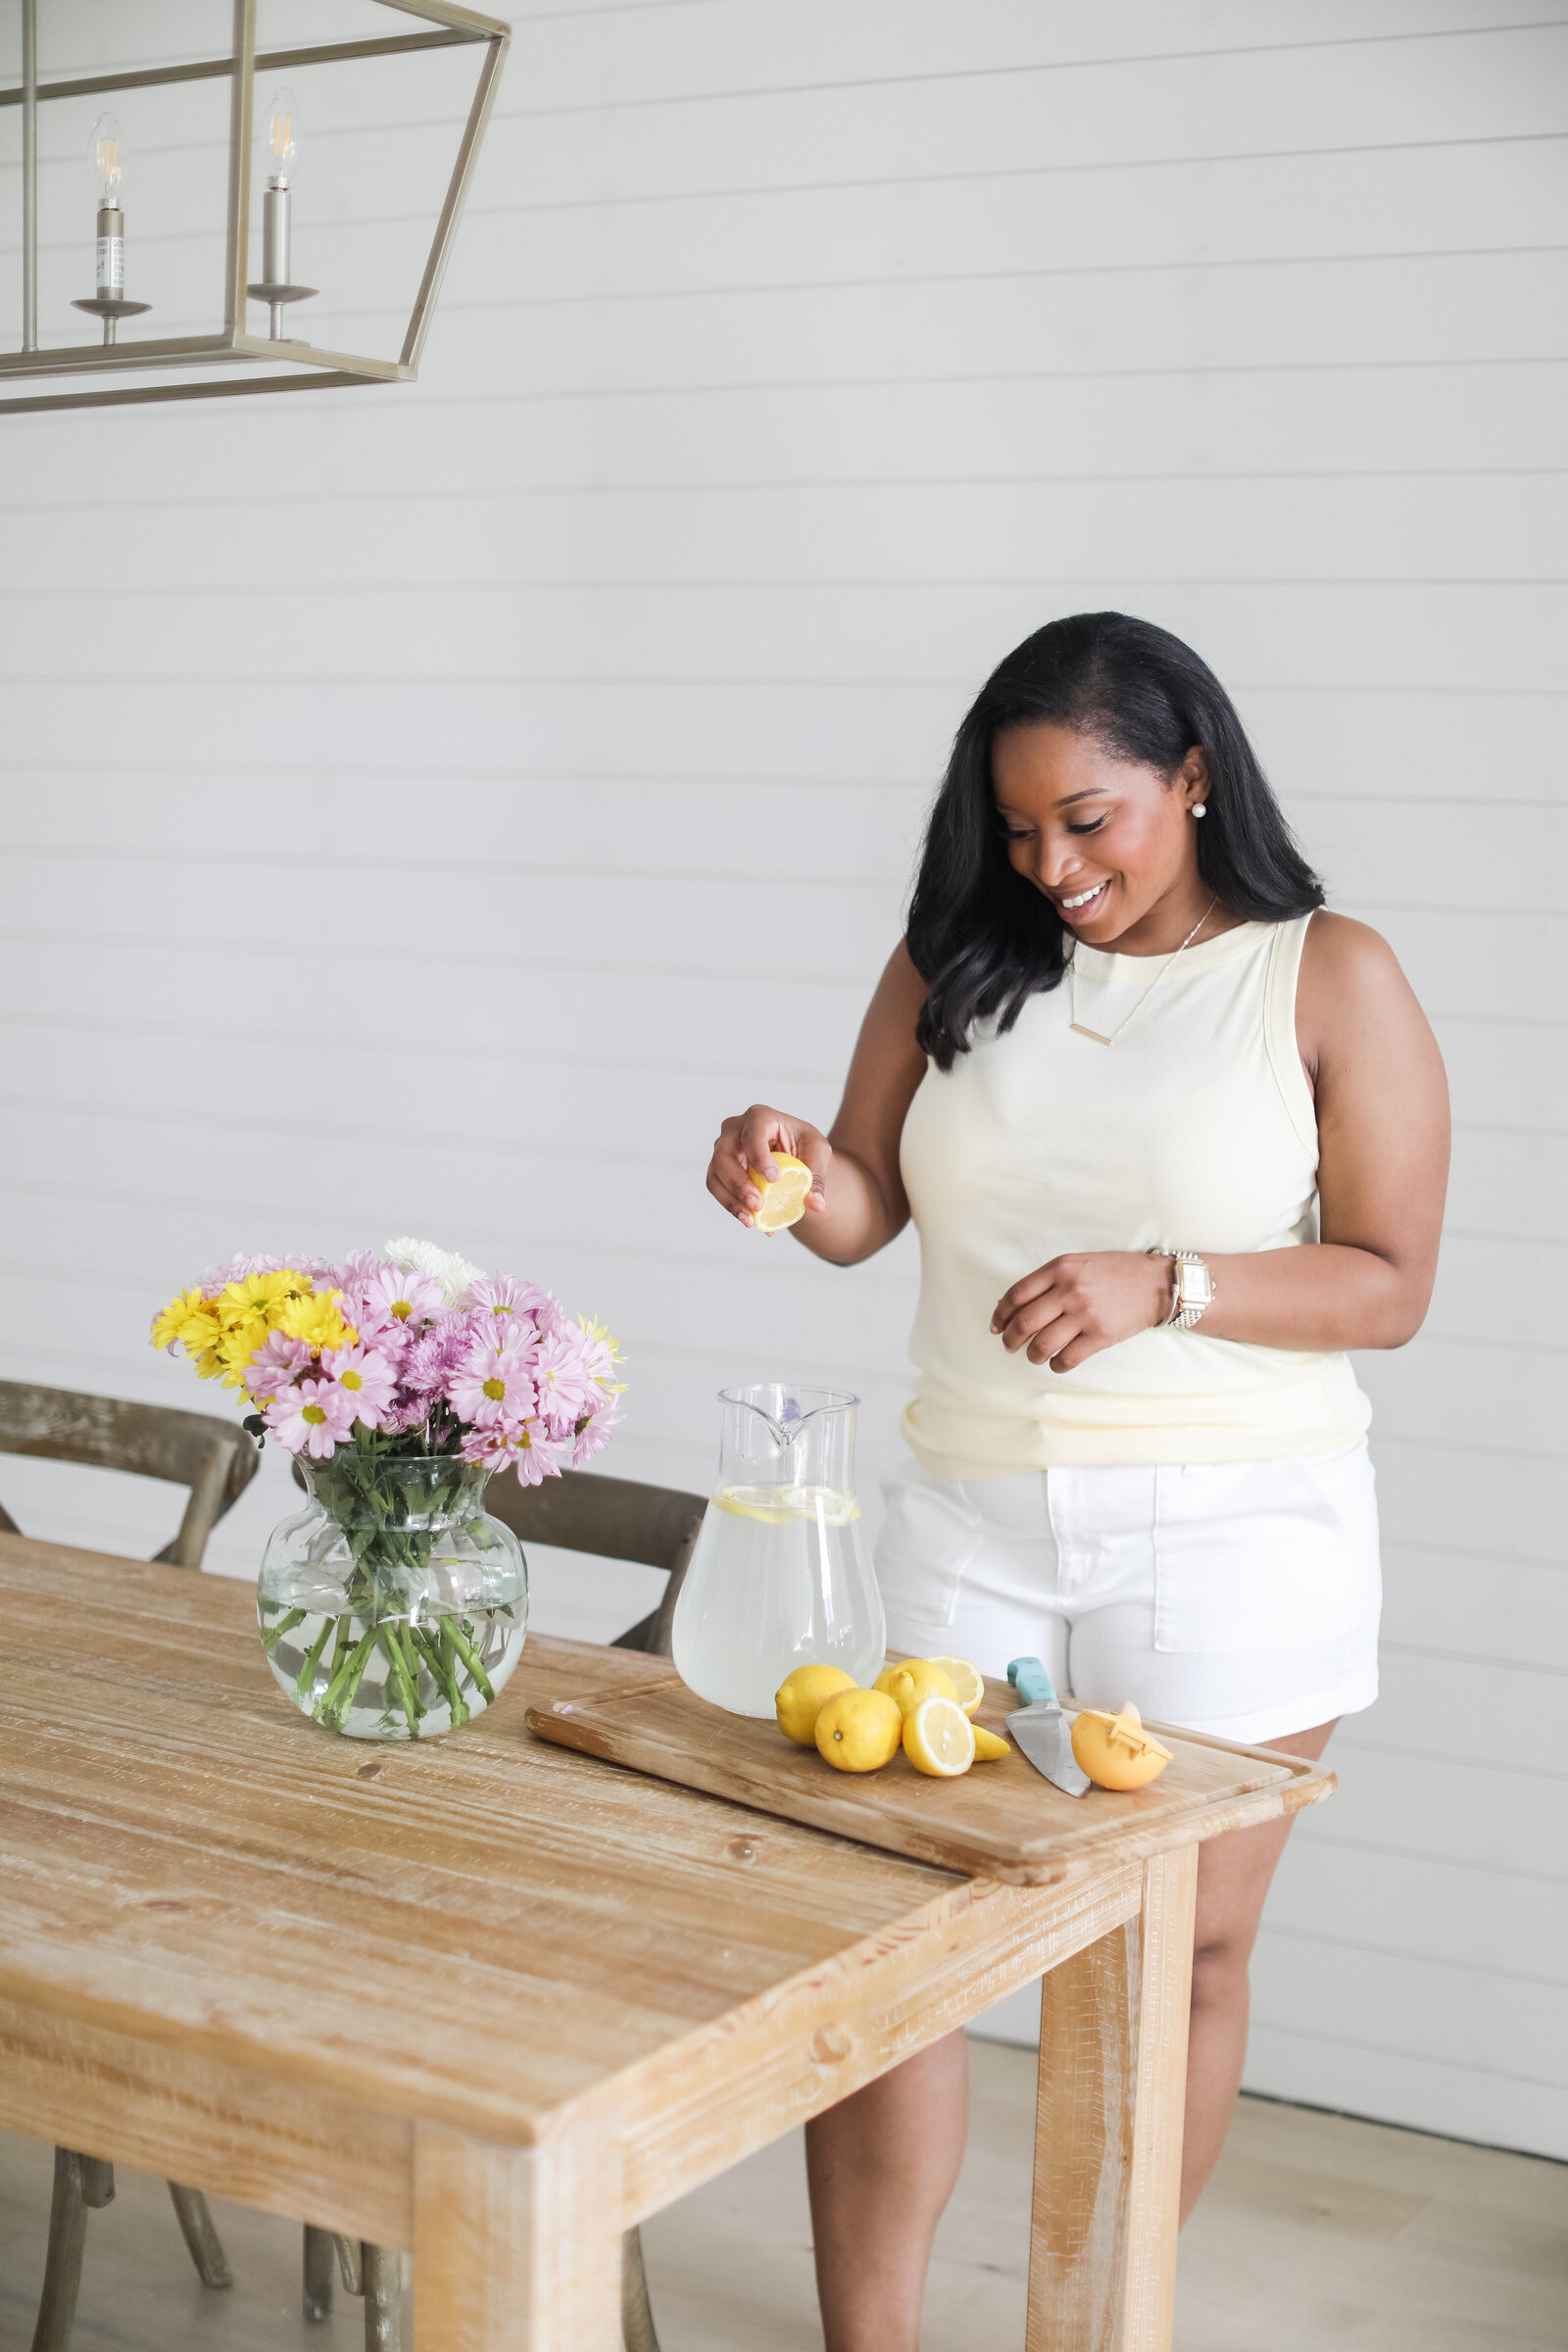 Carmen Renee - Houston Texas Lifestyle Beauty Style Decor Motherhood Blogger - 47